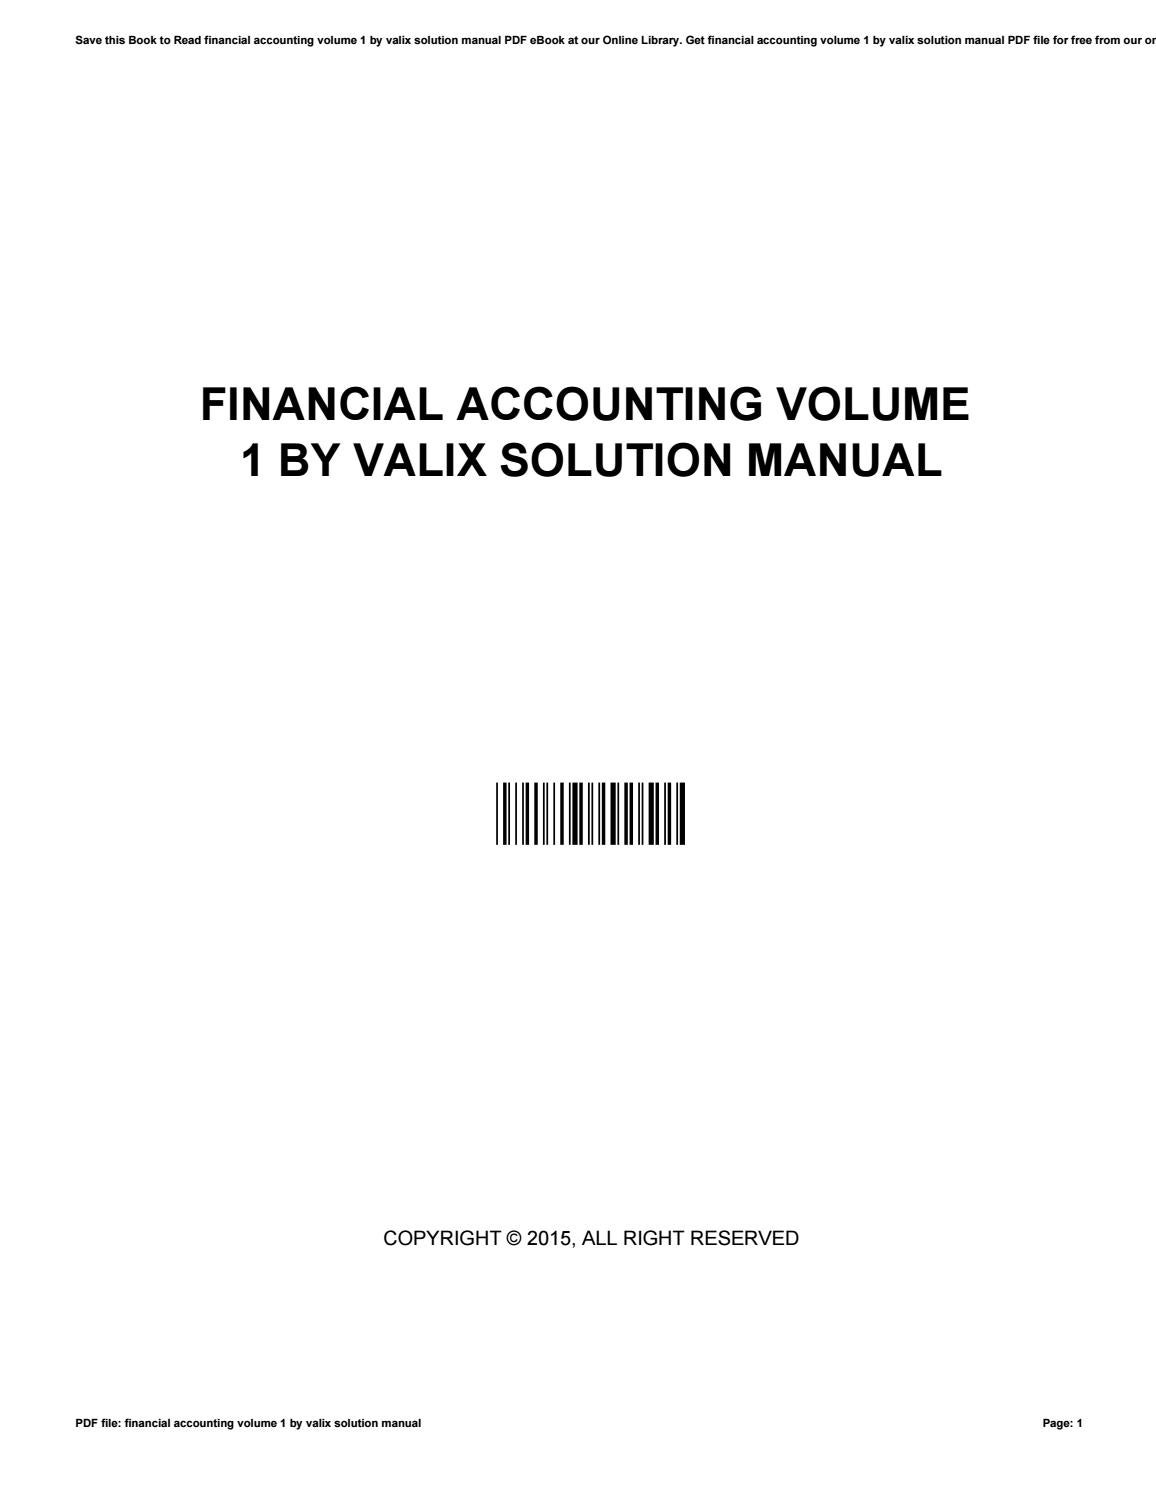 solution manual understanding financial accounting